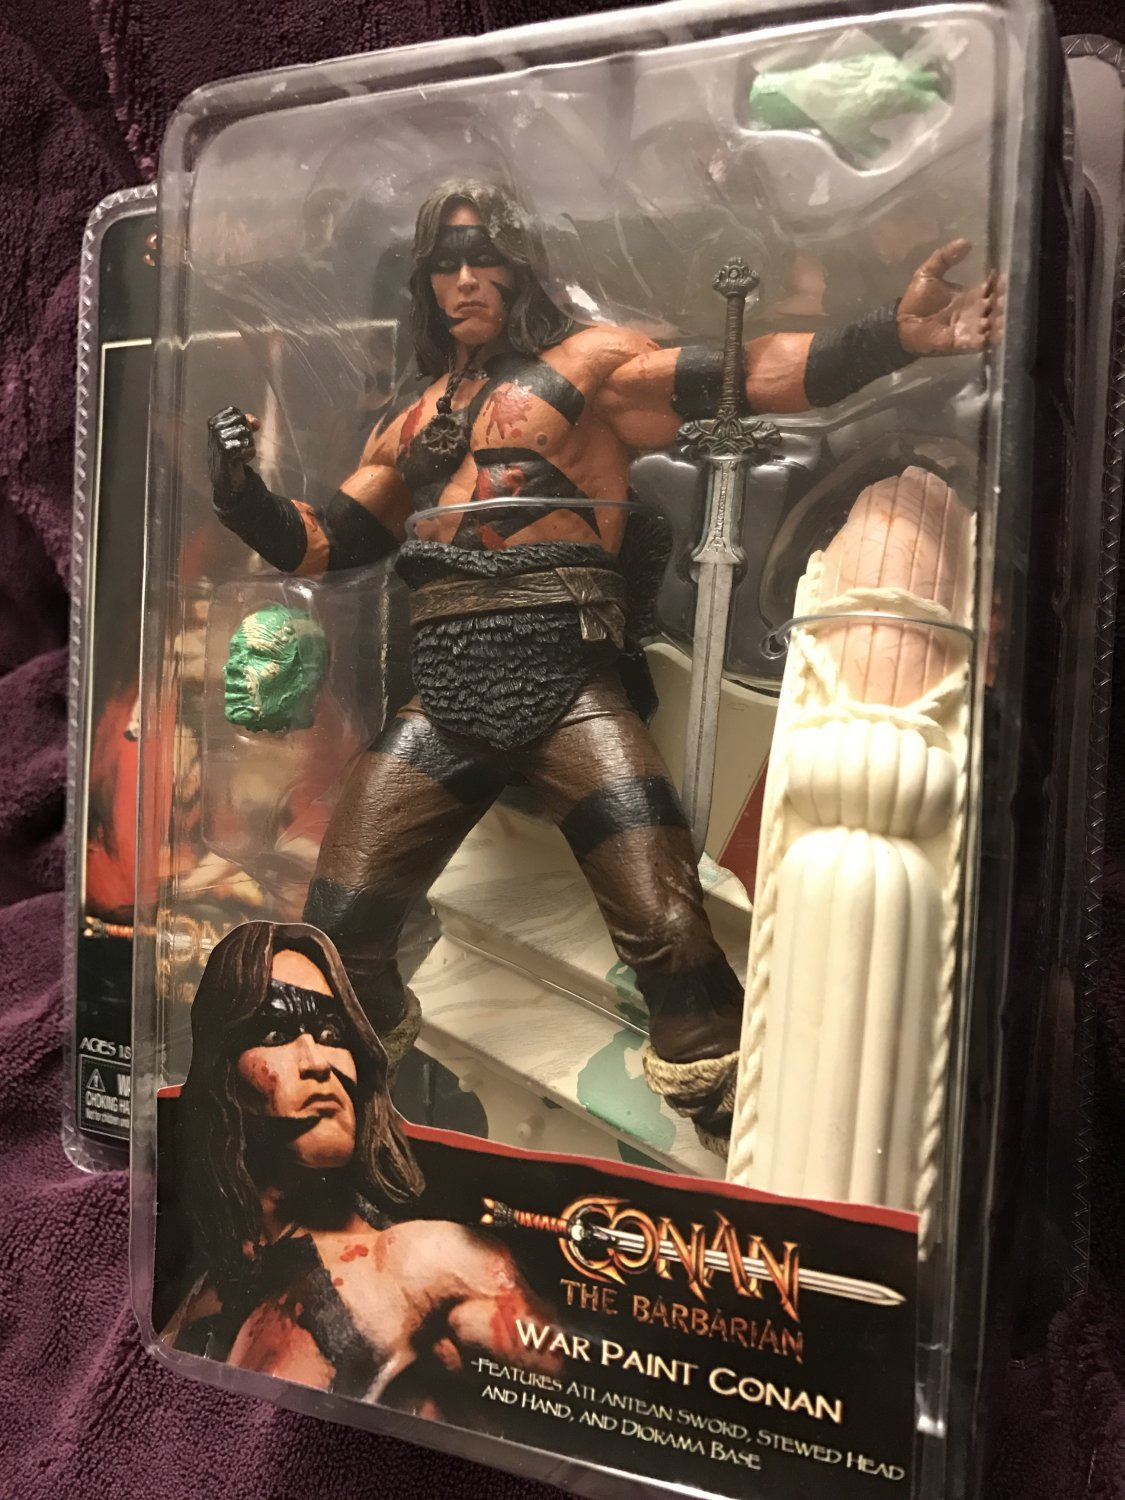 "Conan the Barbarian: War Paint Conan Series 1 - 7"" figure by Neca"